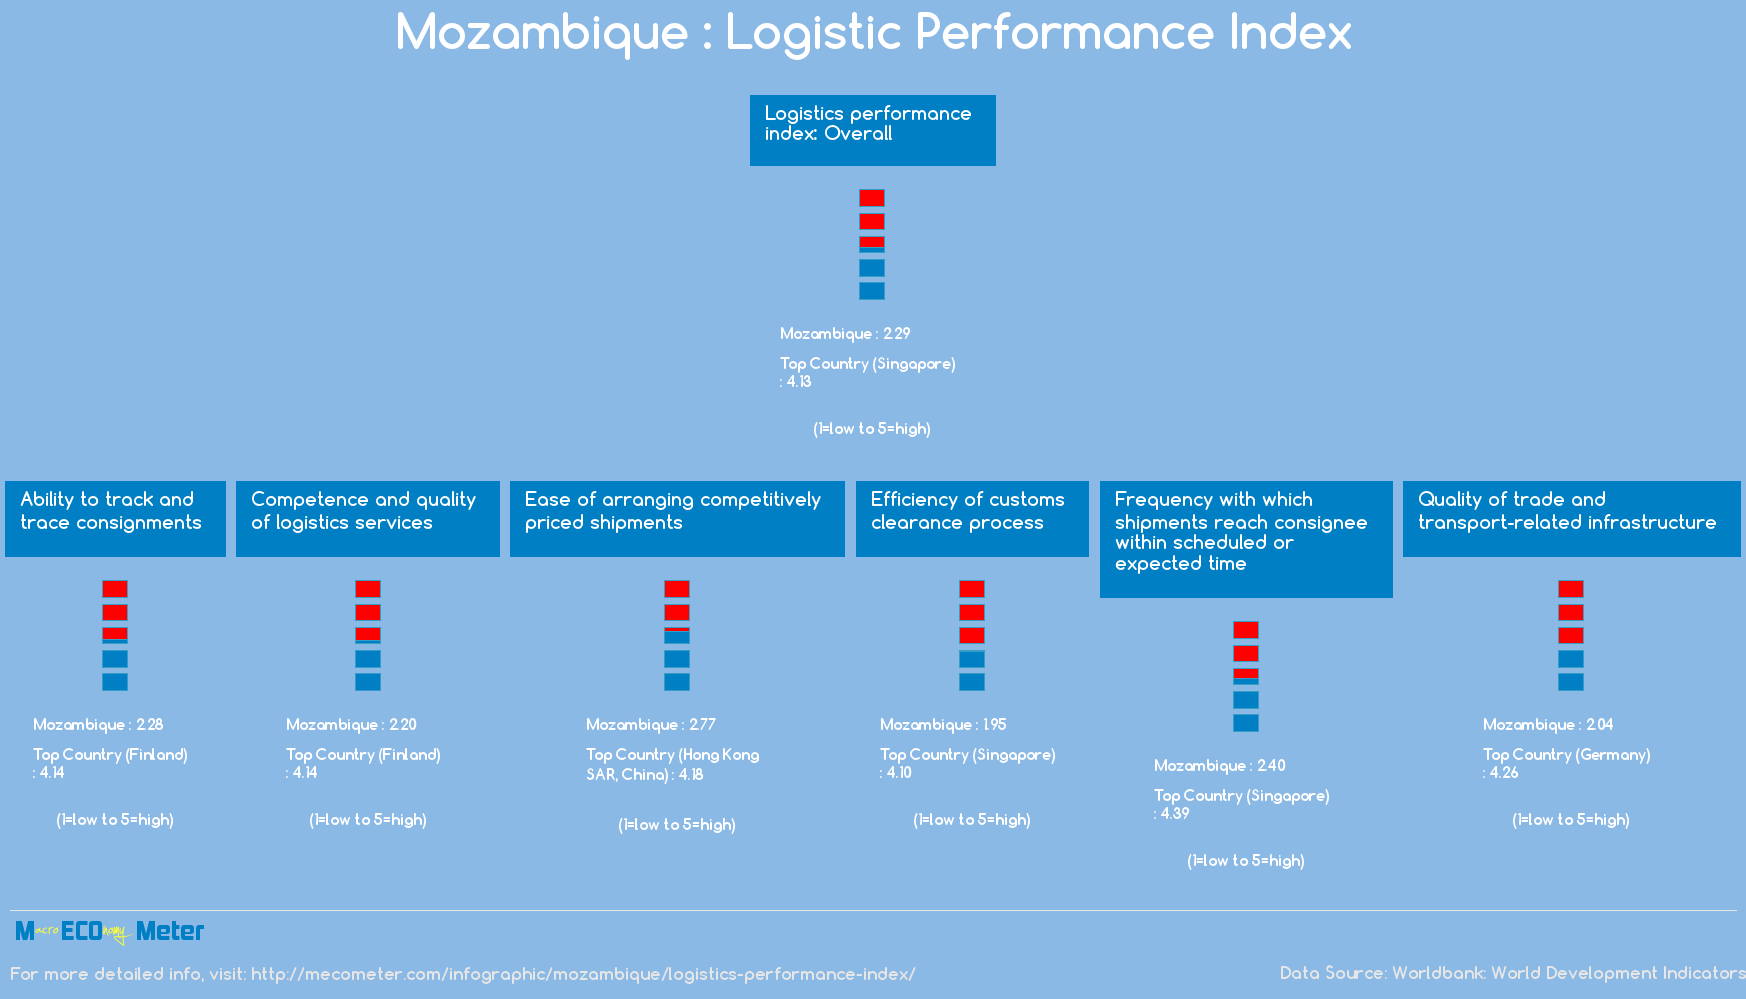 Mozambique : Logistic Performance Index